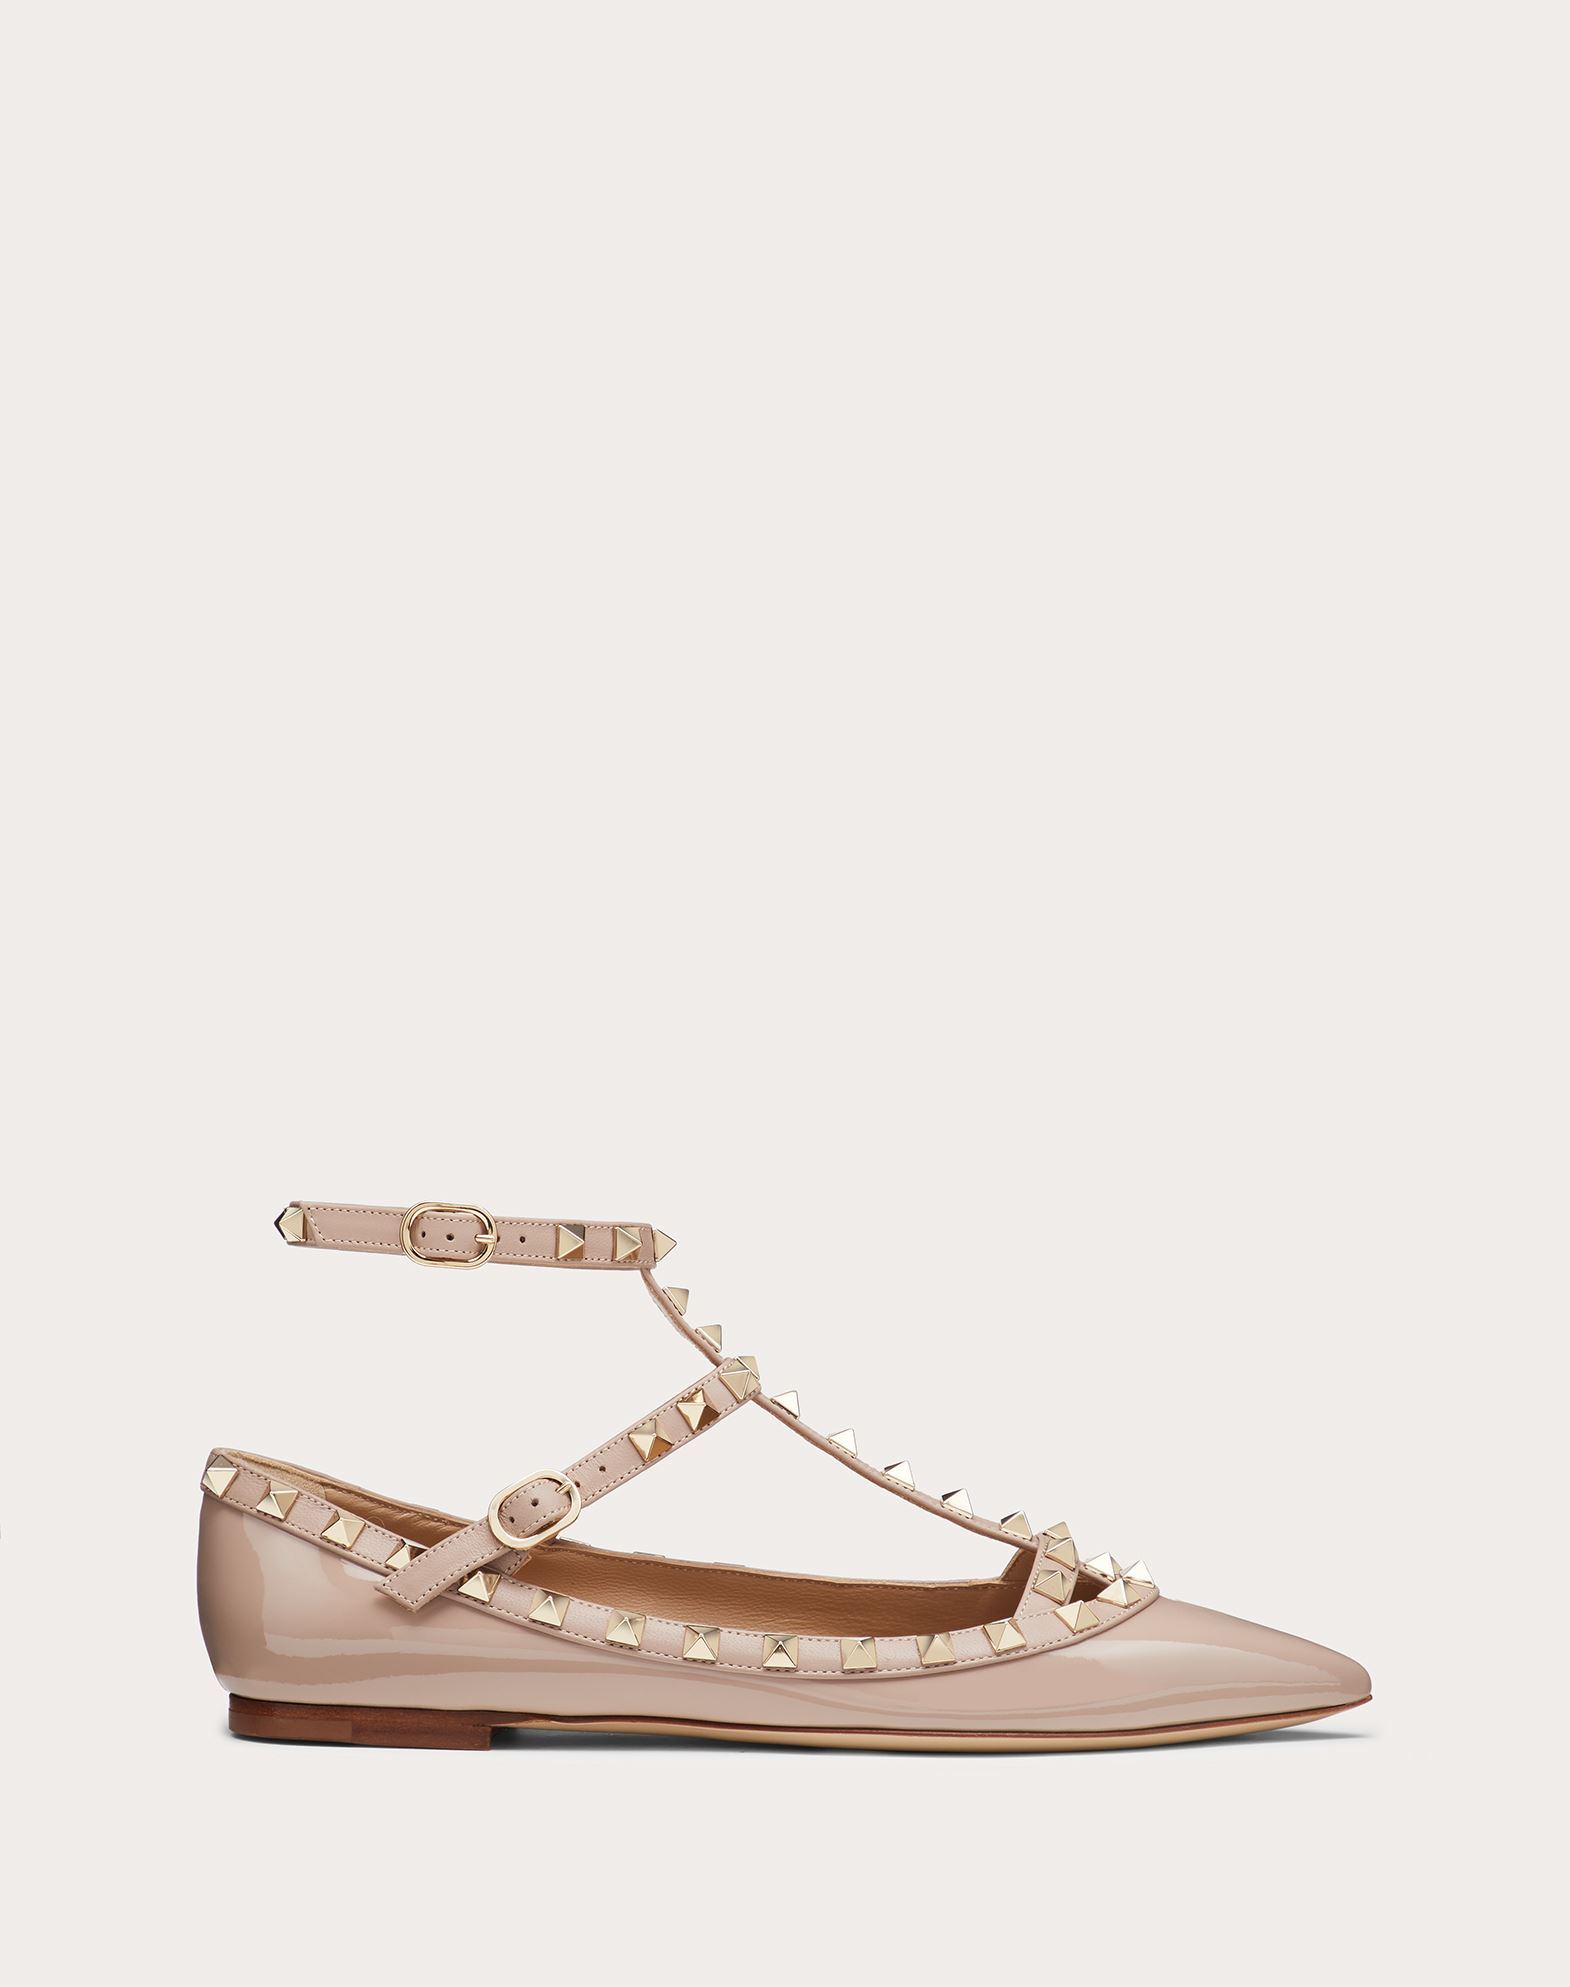 VALENTINO Metal Applications Solid color Buckle Leather sole Narrow toeline  11141501qm